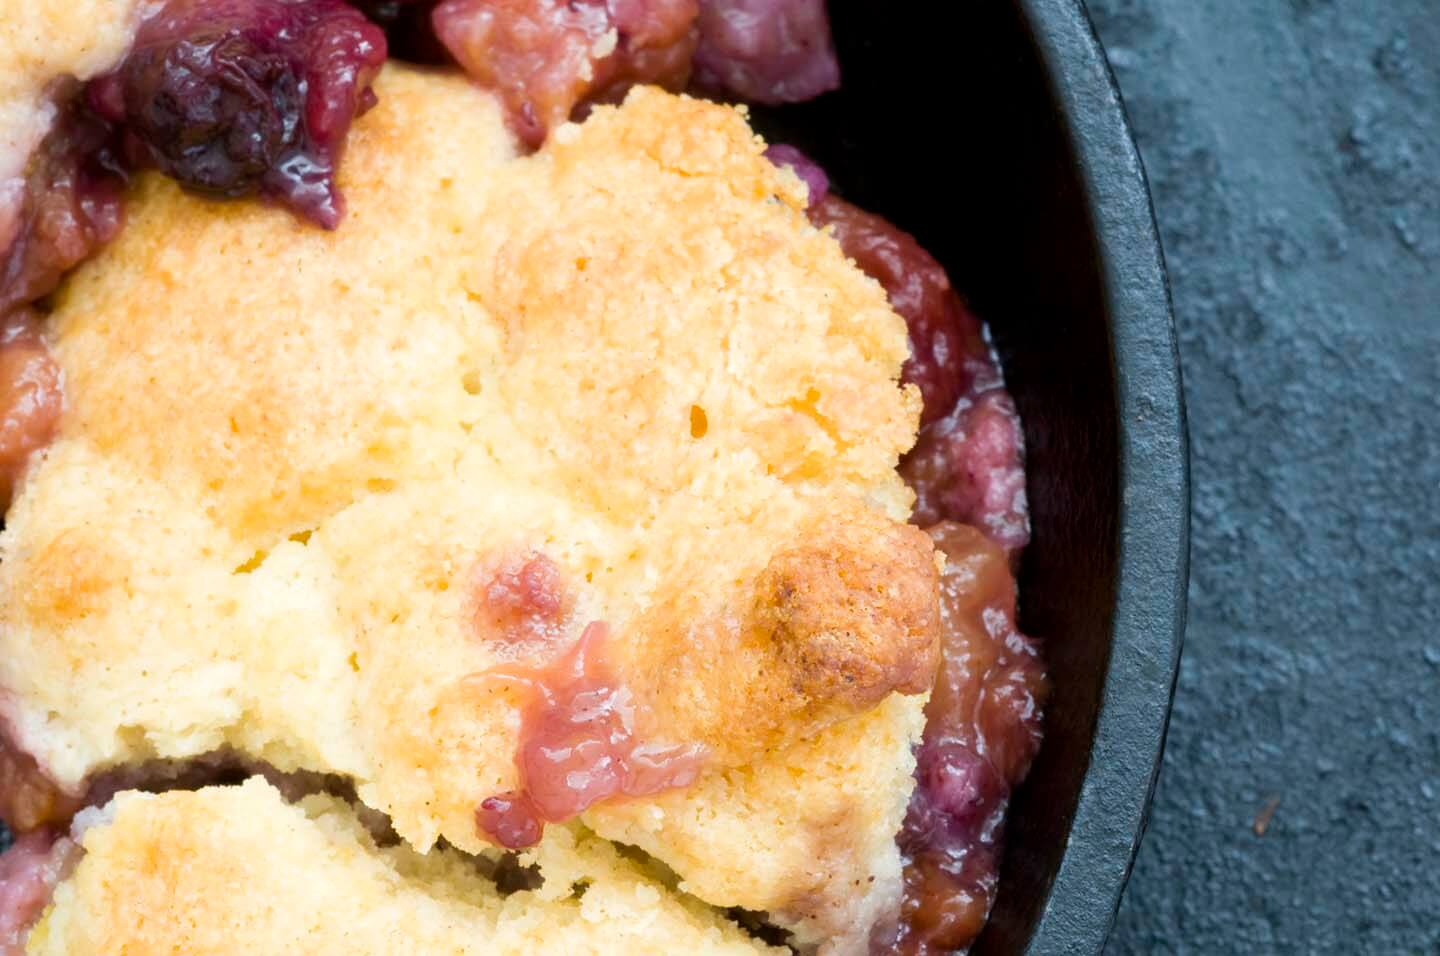 Blueberry peach cobbler | Homesick Texan